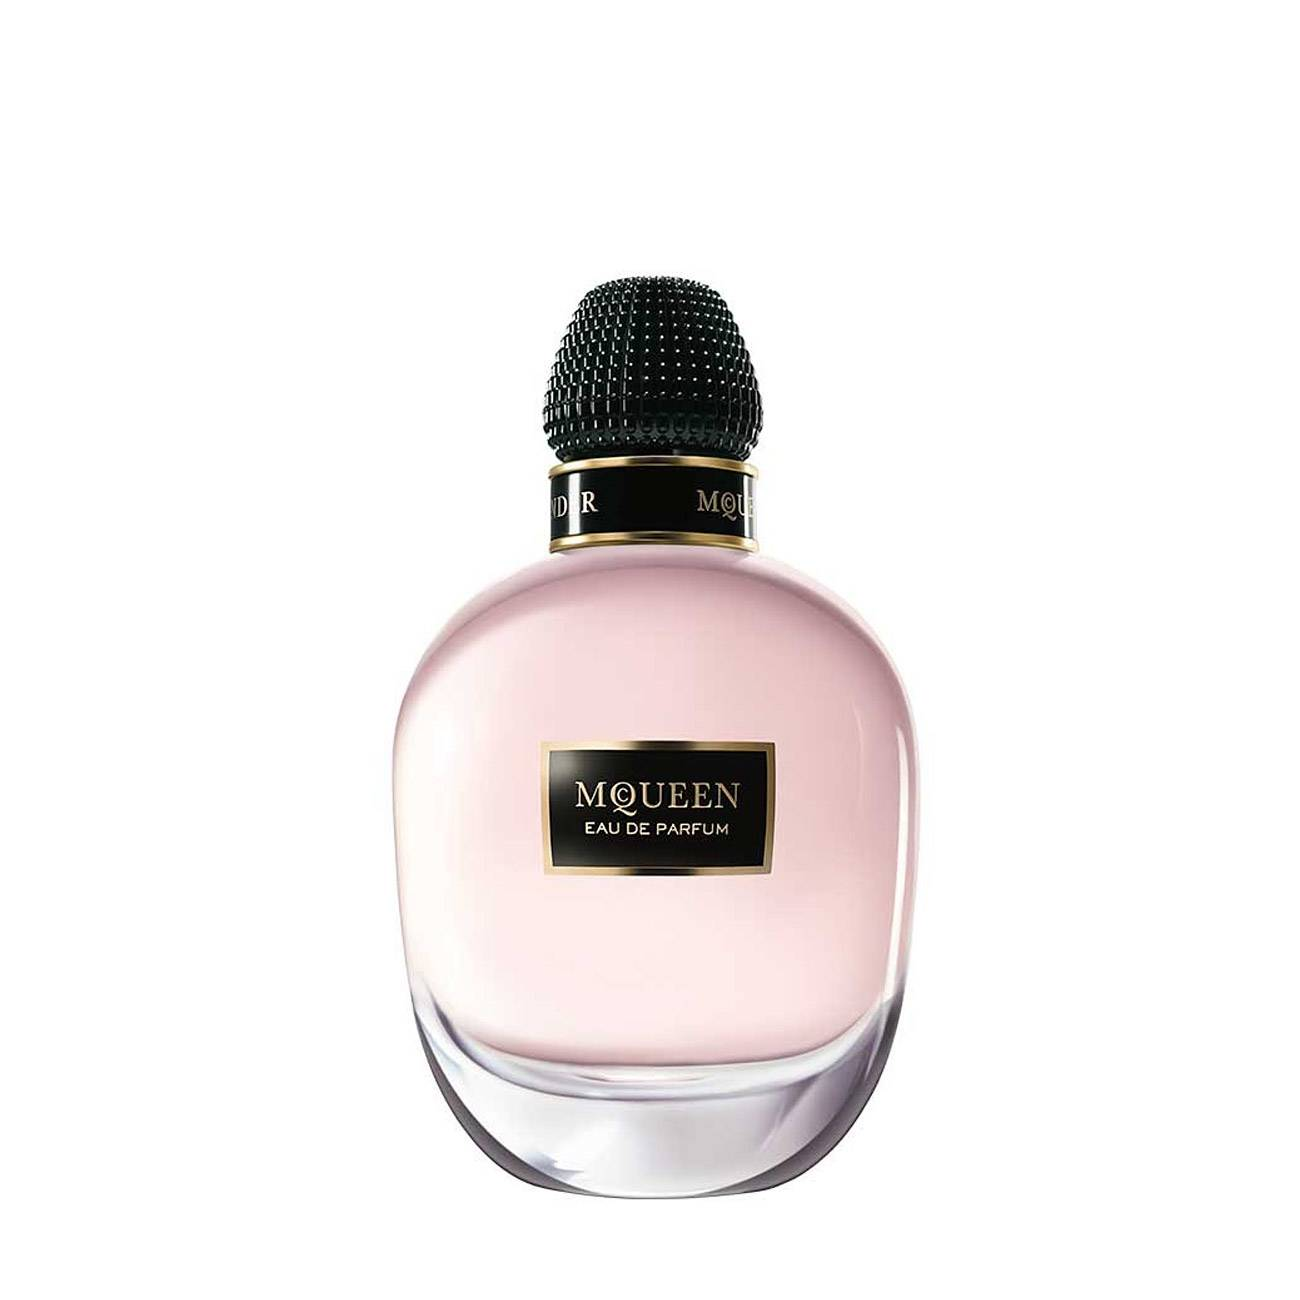 Mcqueen Eau De Parfum For Her 75ml imagine